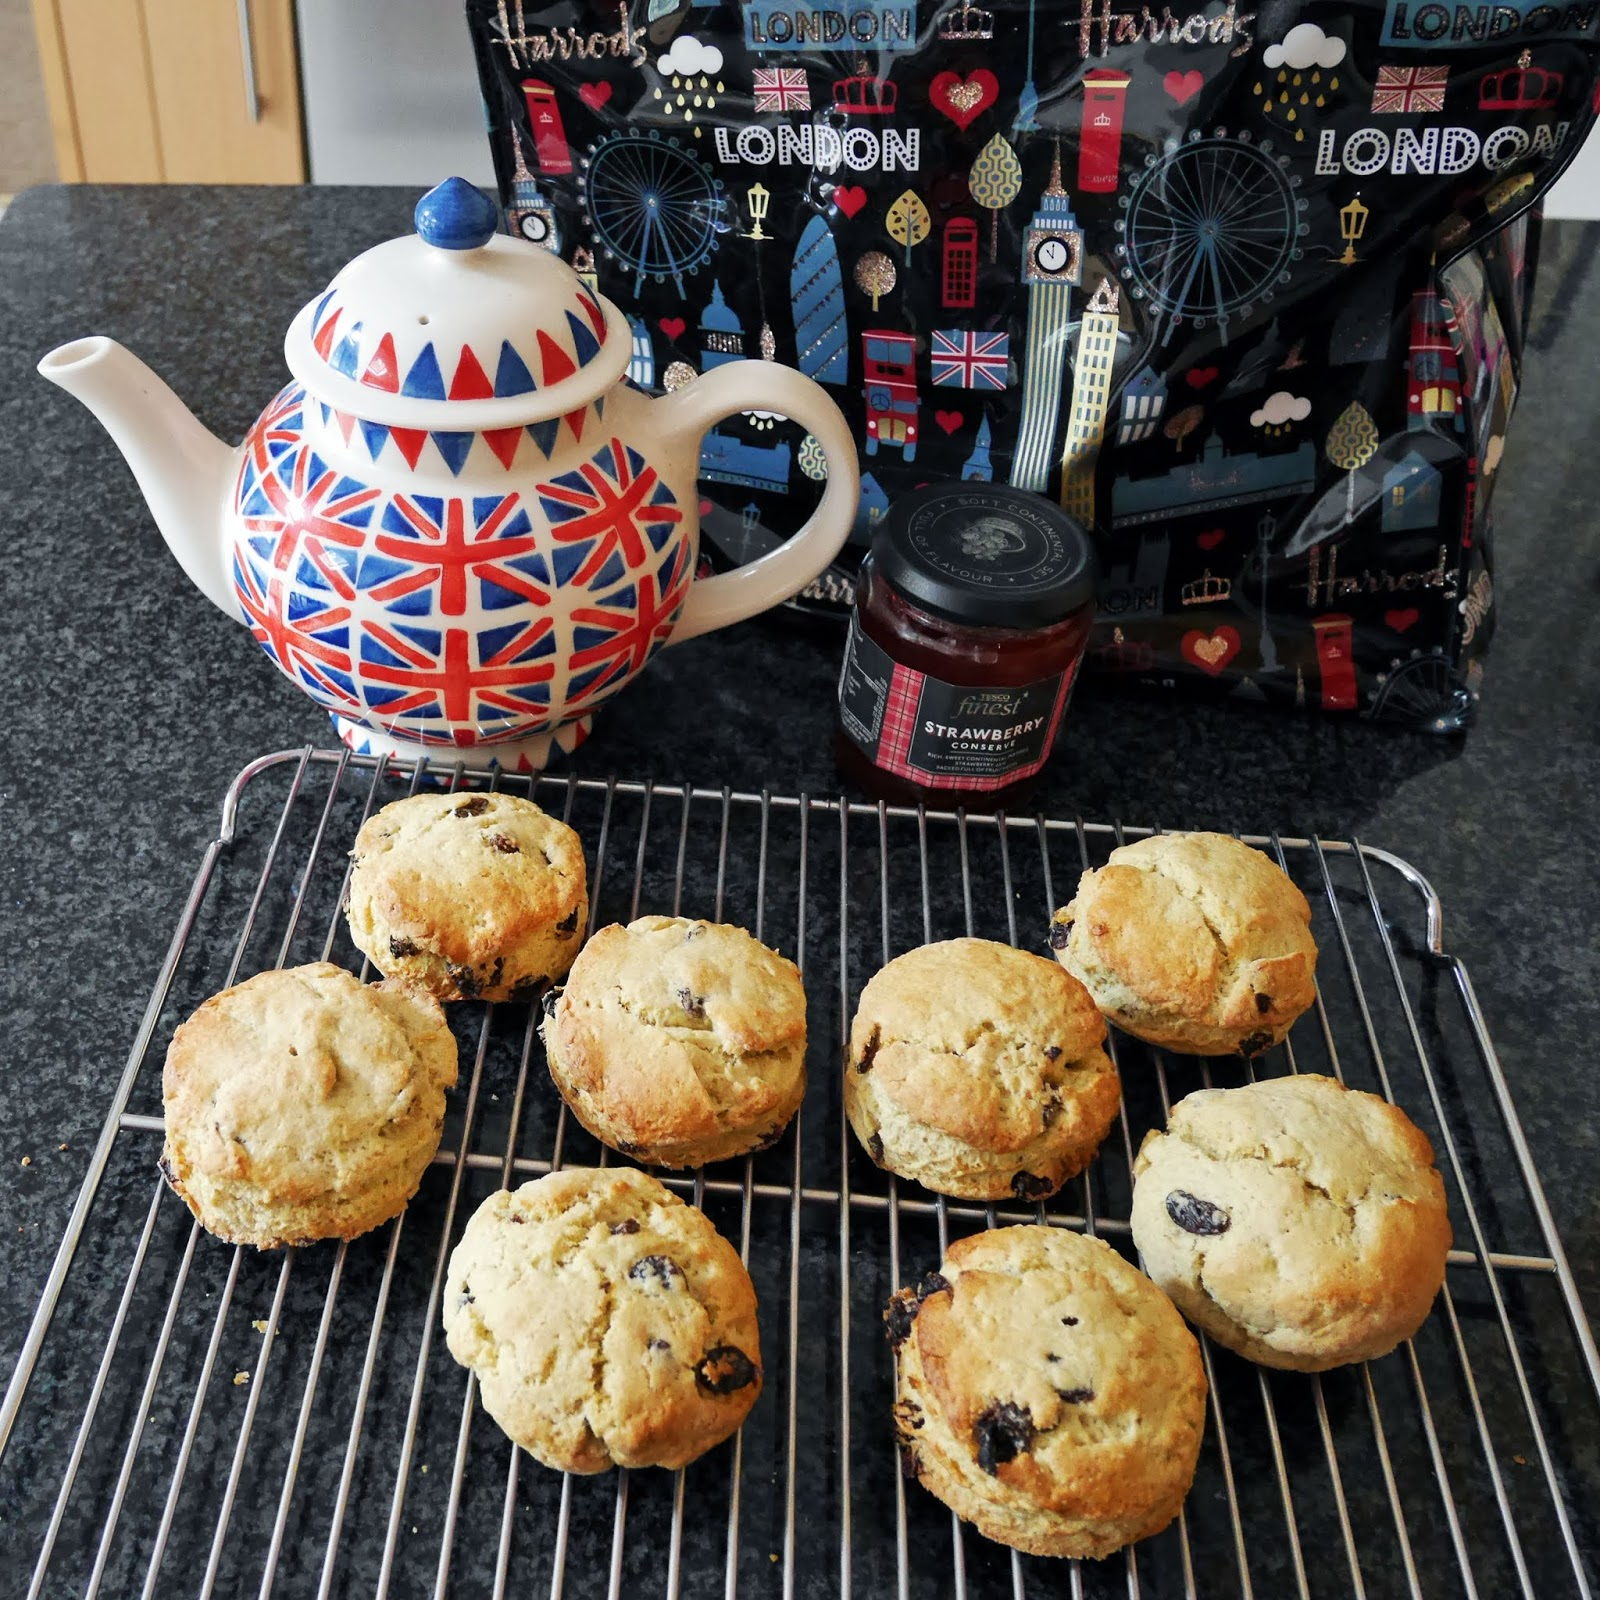 Fruit scones for the afternoon tea